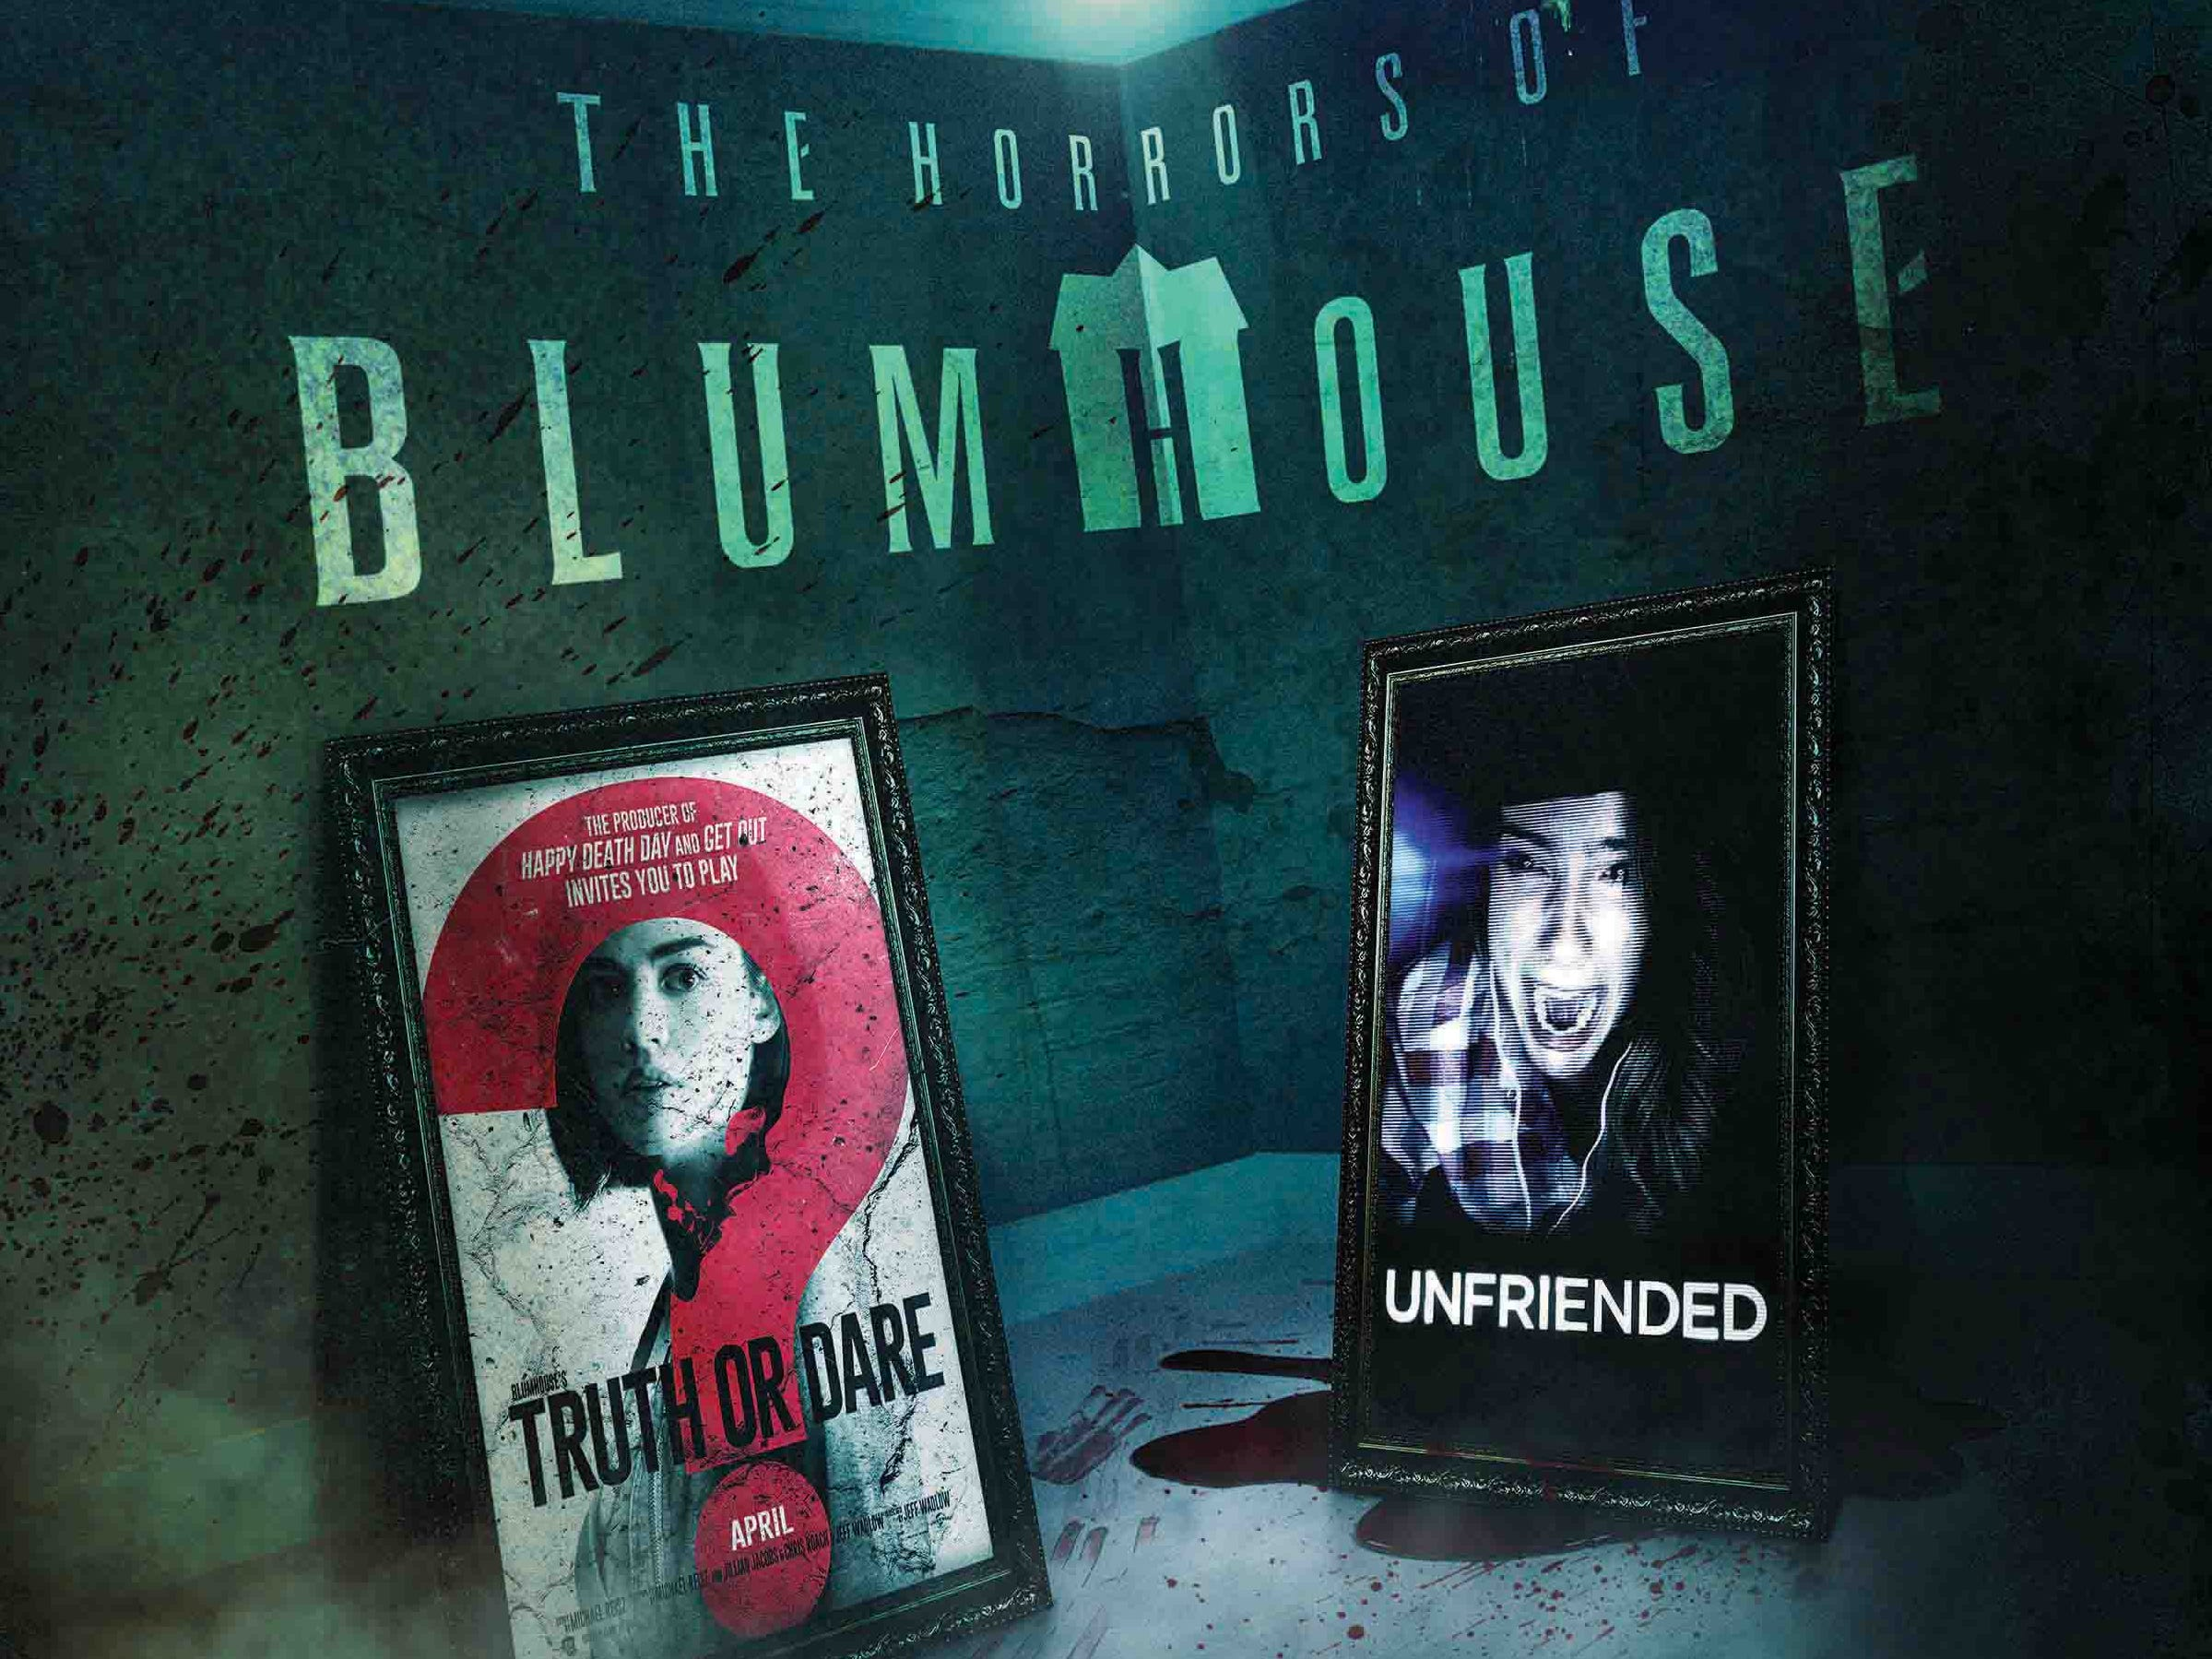 The Horrors of Blumhouse maze returns to Universal Studios' Halloween Horror Nights, bringing new chapters of frightening films to life from leading producer of horror Jason Blum's blockbuster movies.